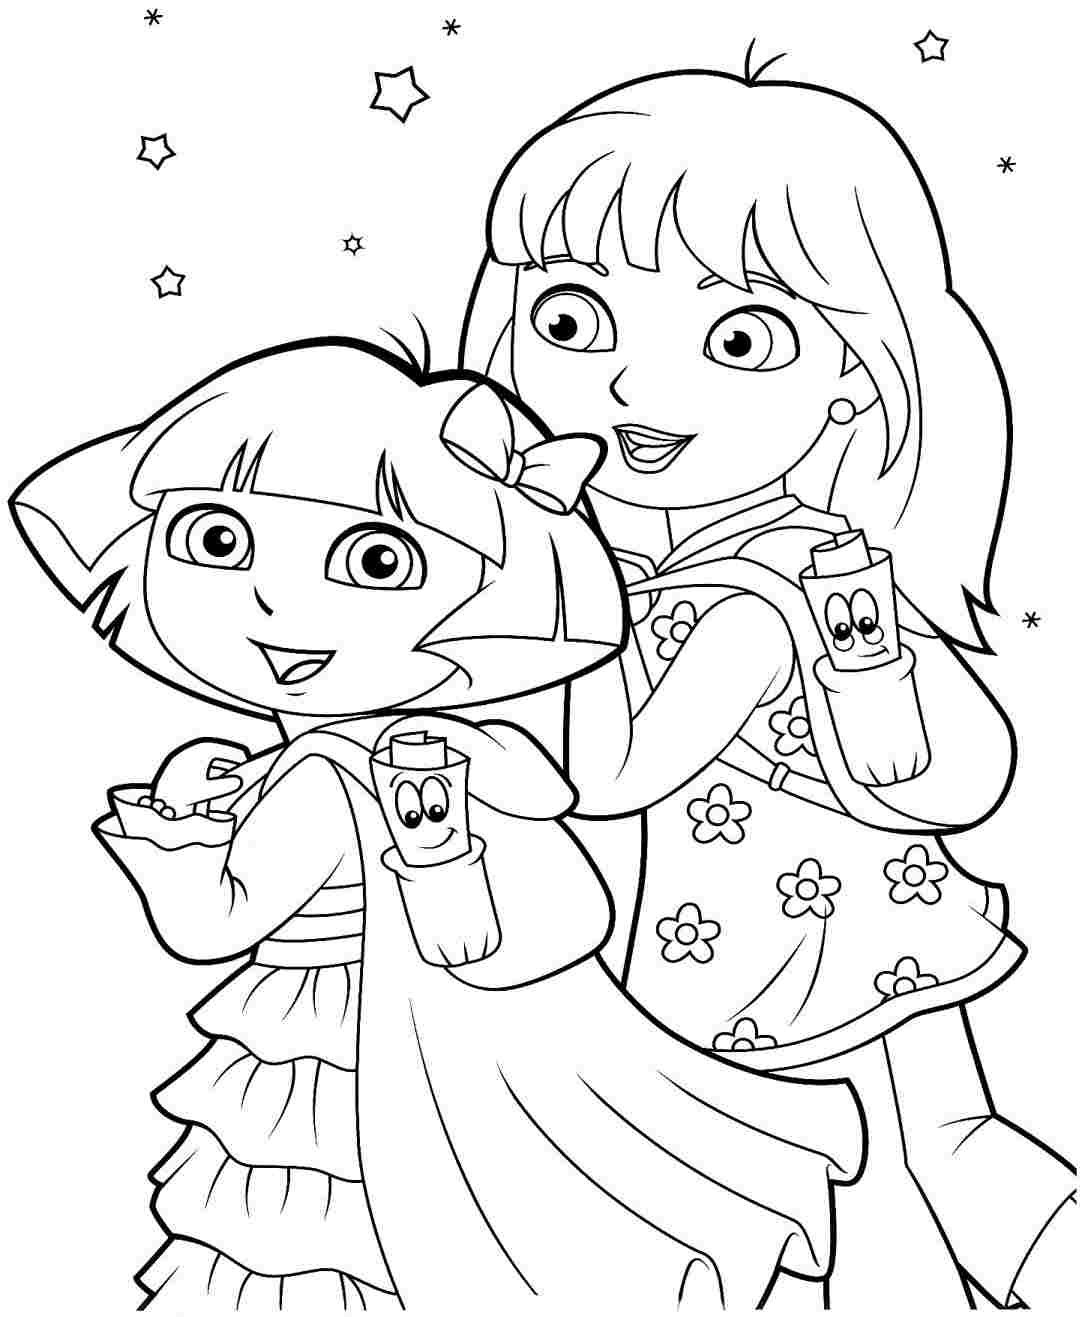 coloring pages dora and friends dora and friends coloring pages to download and print for free coloring pages friends and dora